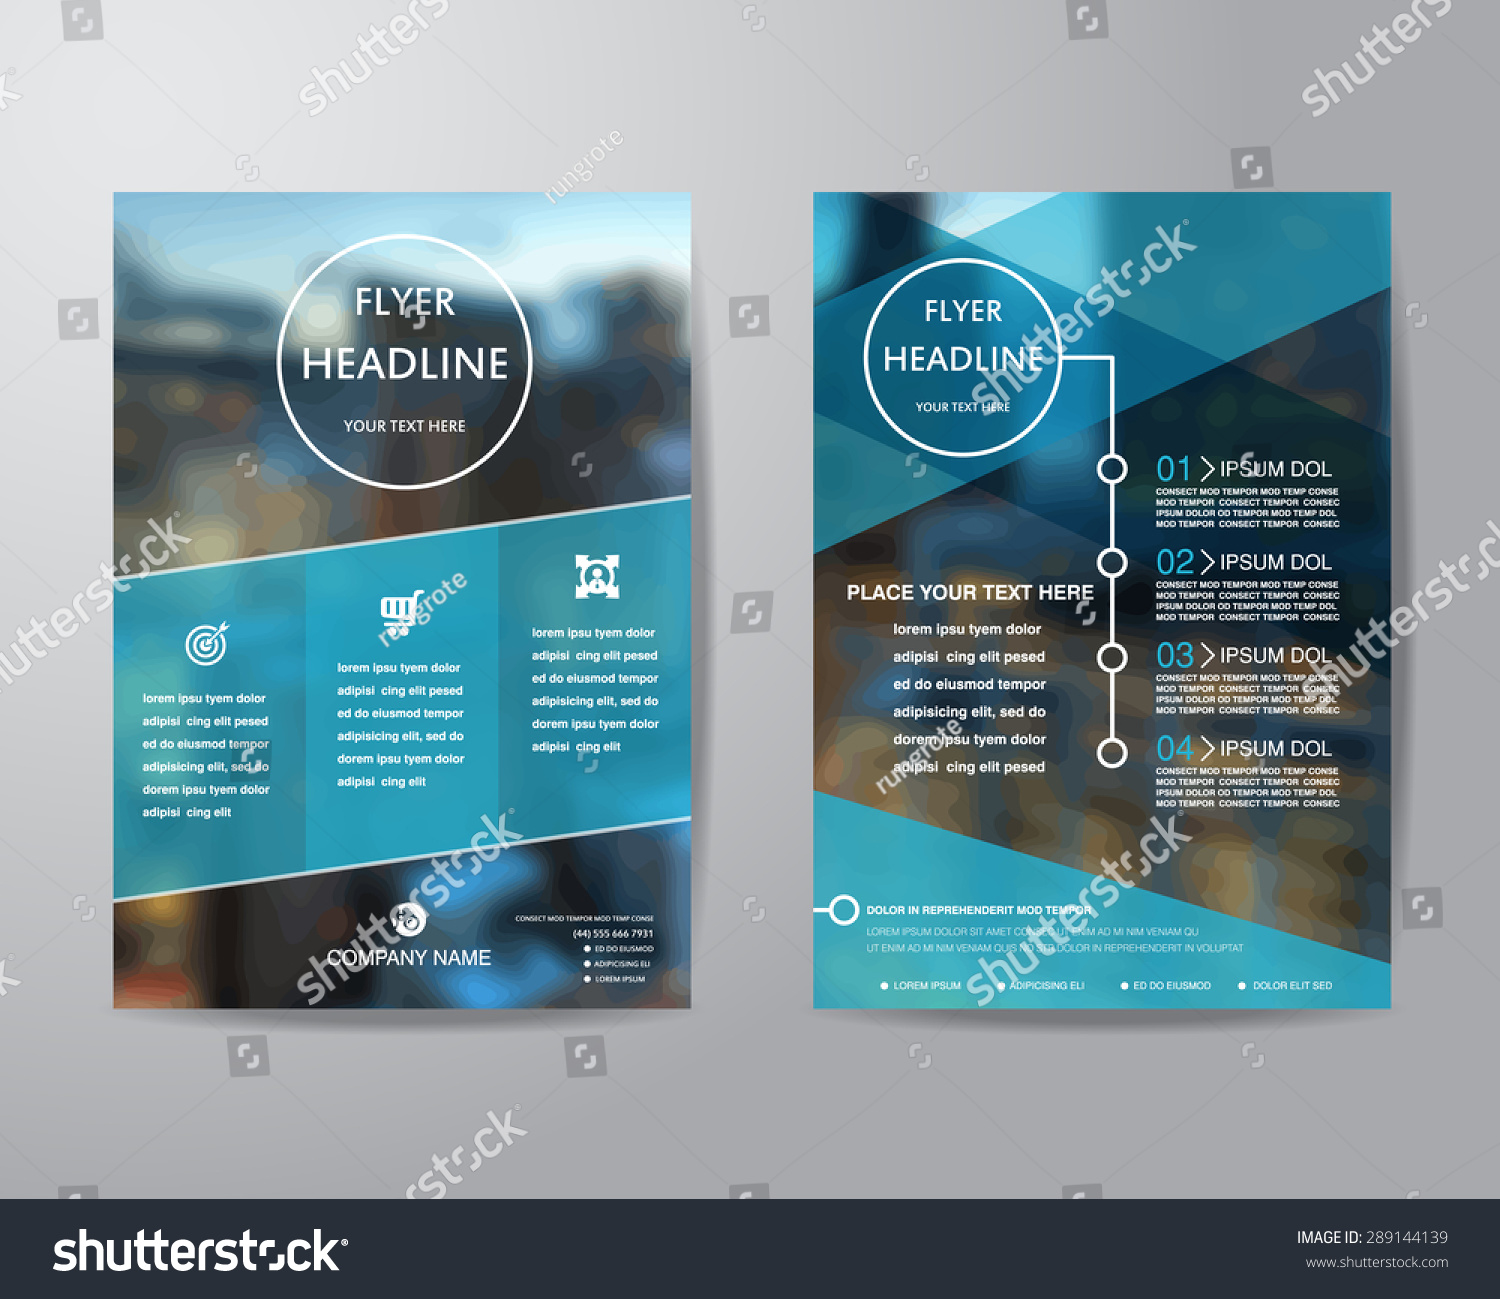 Business brochure flyer design layout template stock for Brochure for web design company